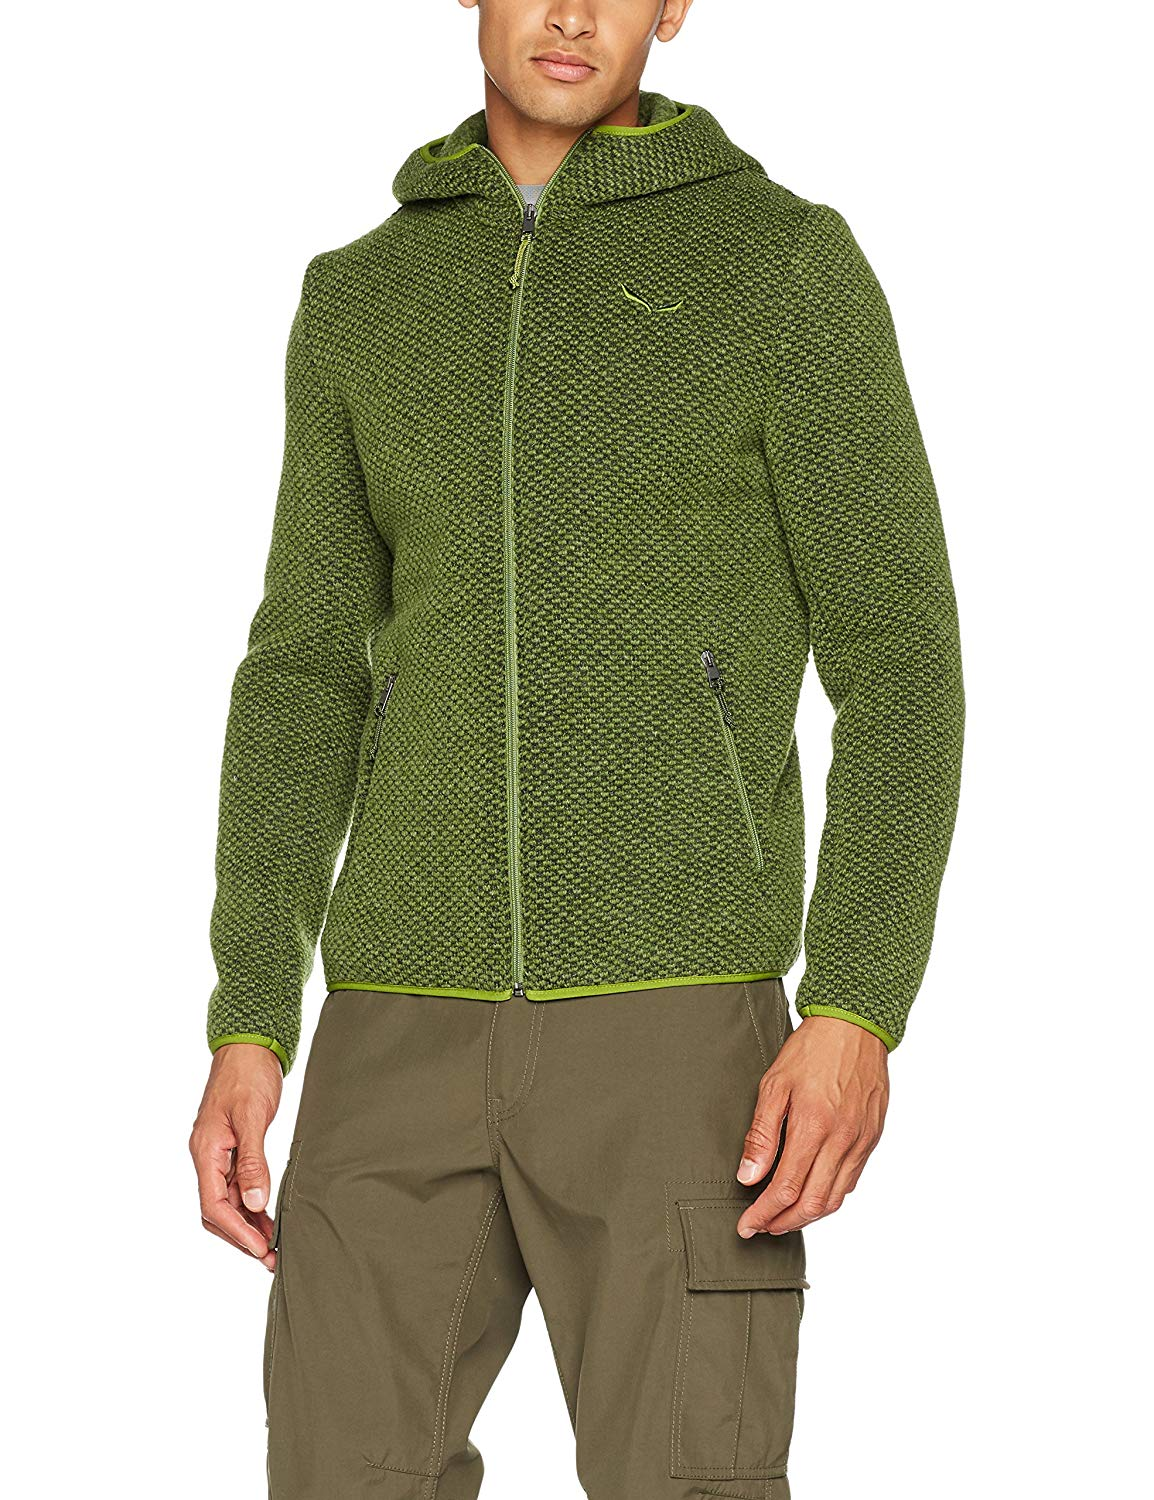 Salewa Herren Wollhoody Kapuzenjacke - oil green -